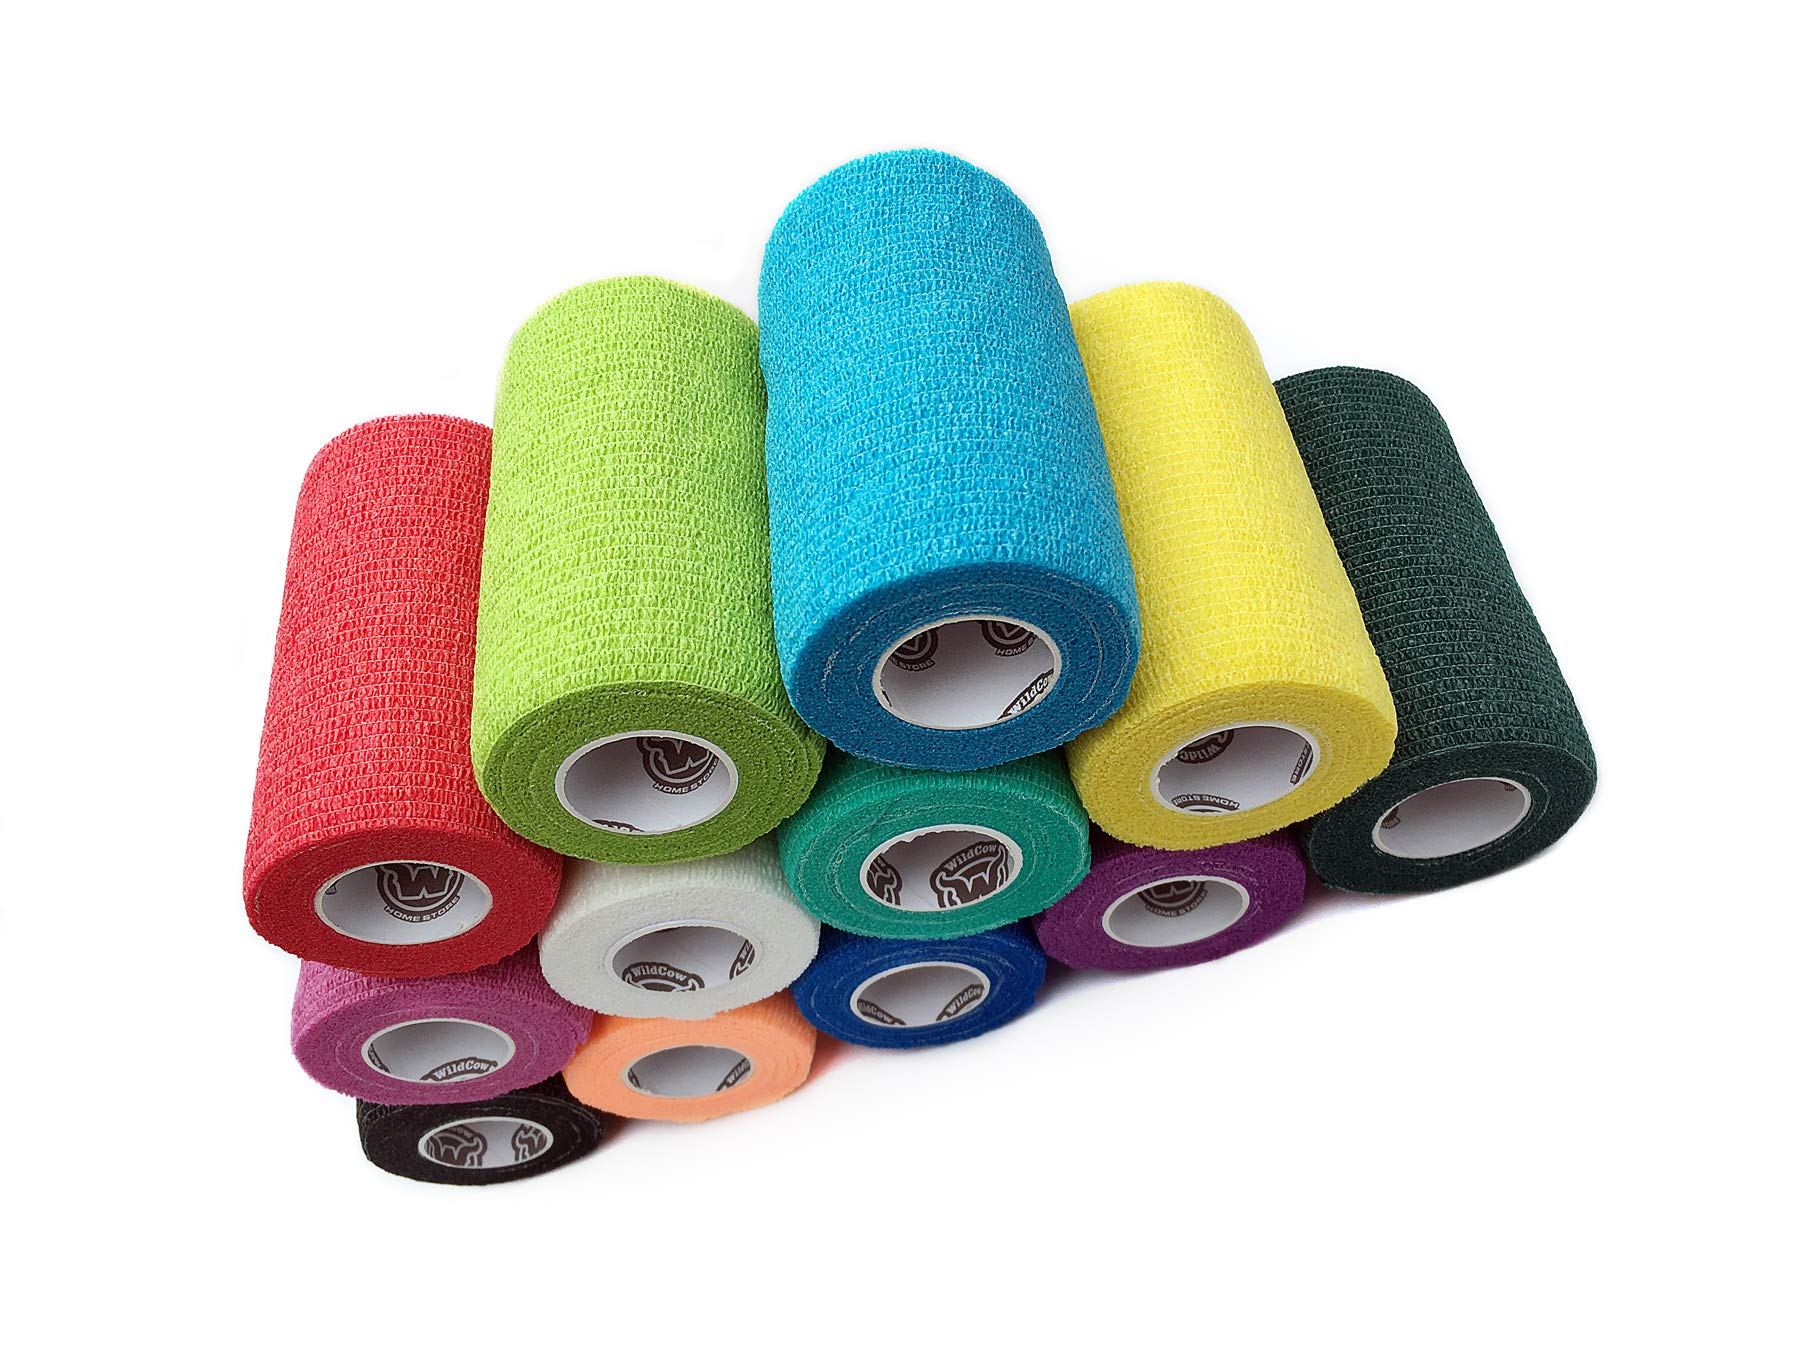 WildCow Vet Wrap Bulk Bandage Tape (4 Inch 12 Color Pack), Waterproof Self Adherent Cohesive Rolls by WildCow